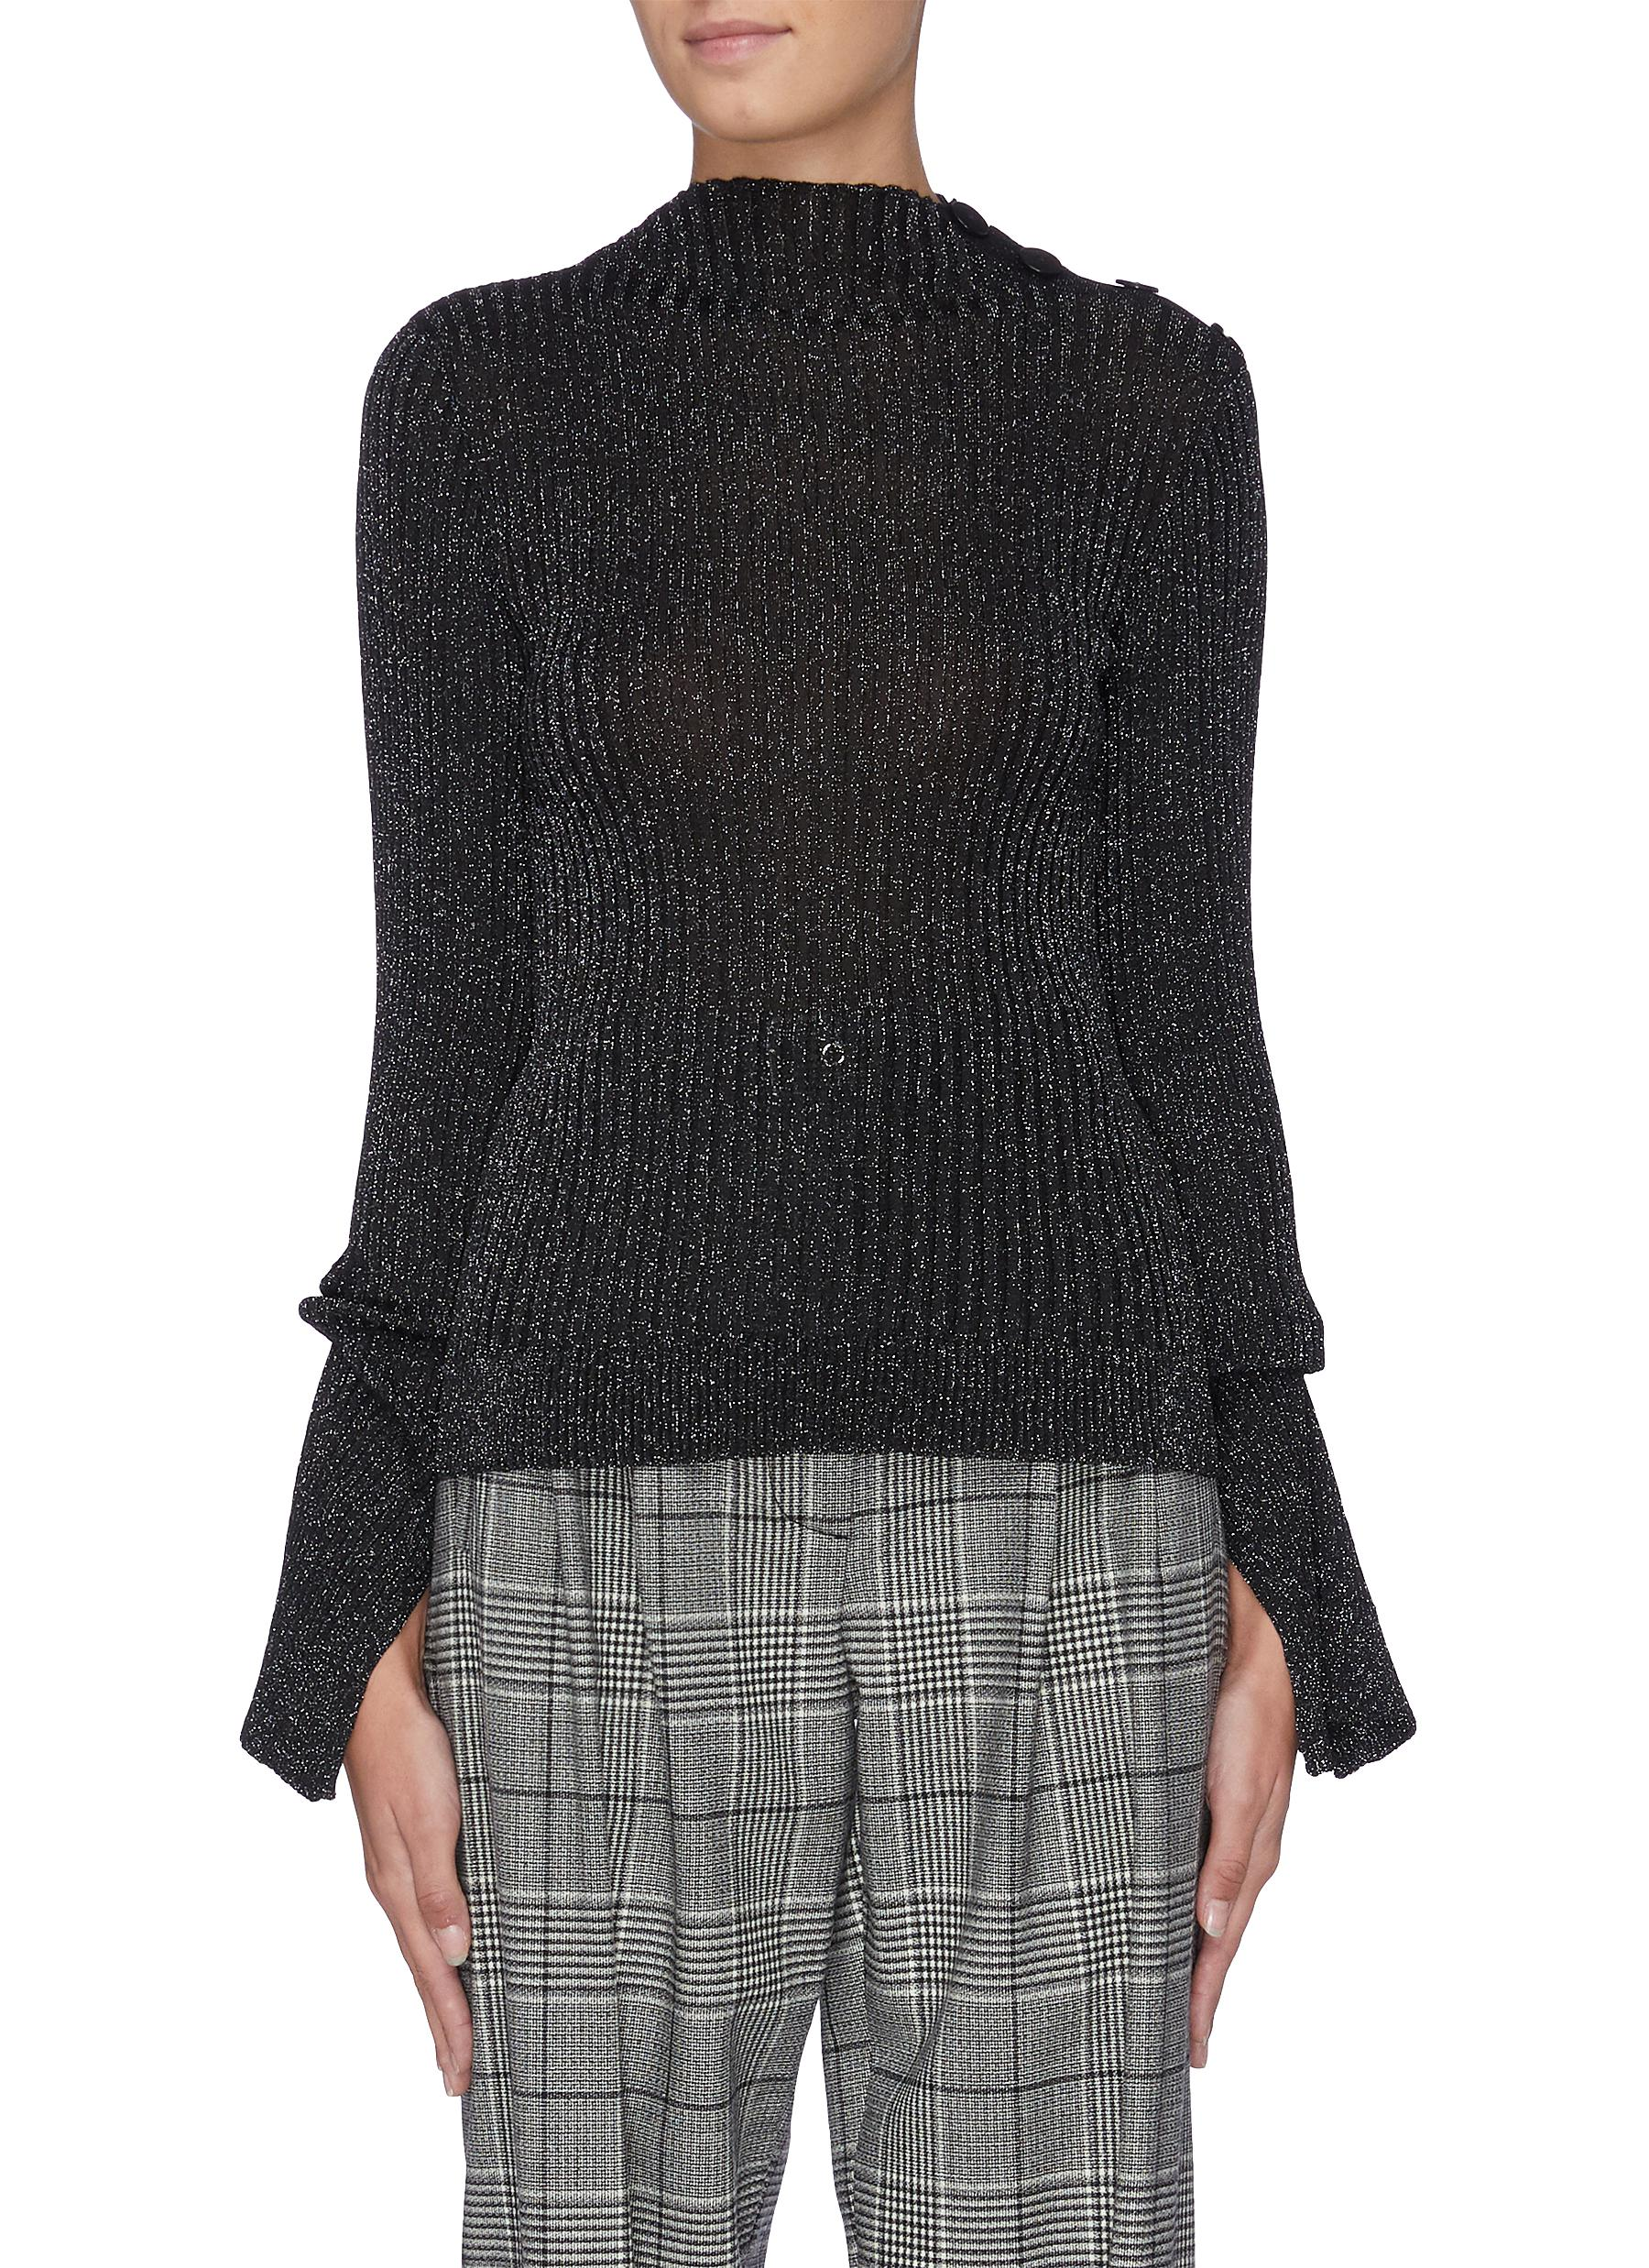 Kiruna split cuff metallic sweater by Roland Mouret